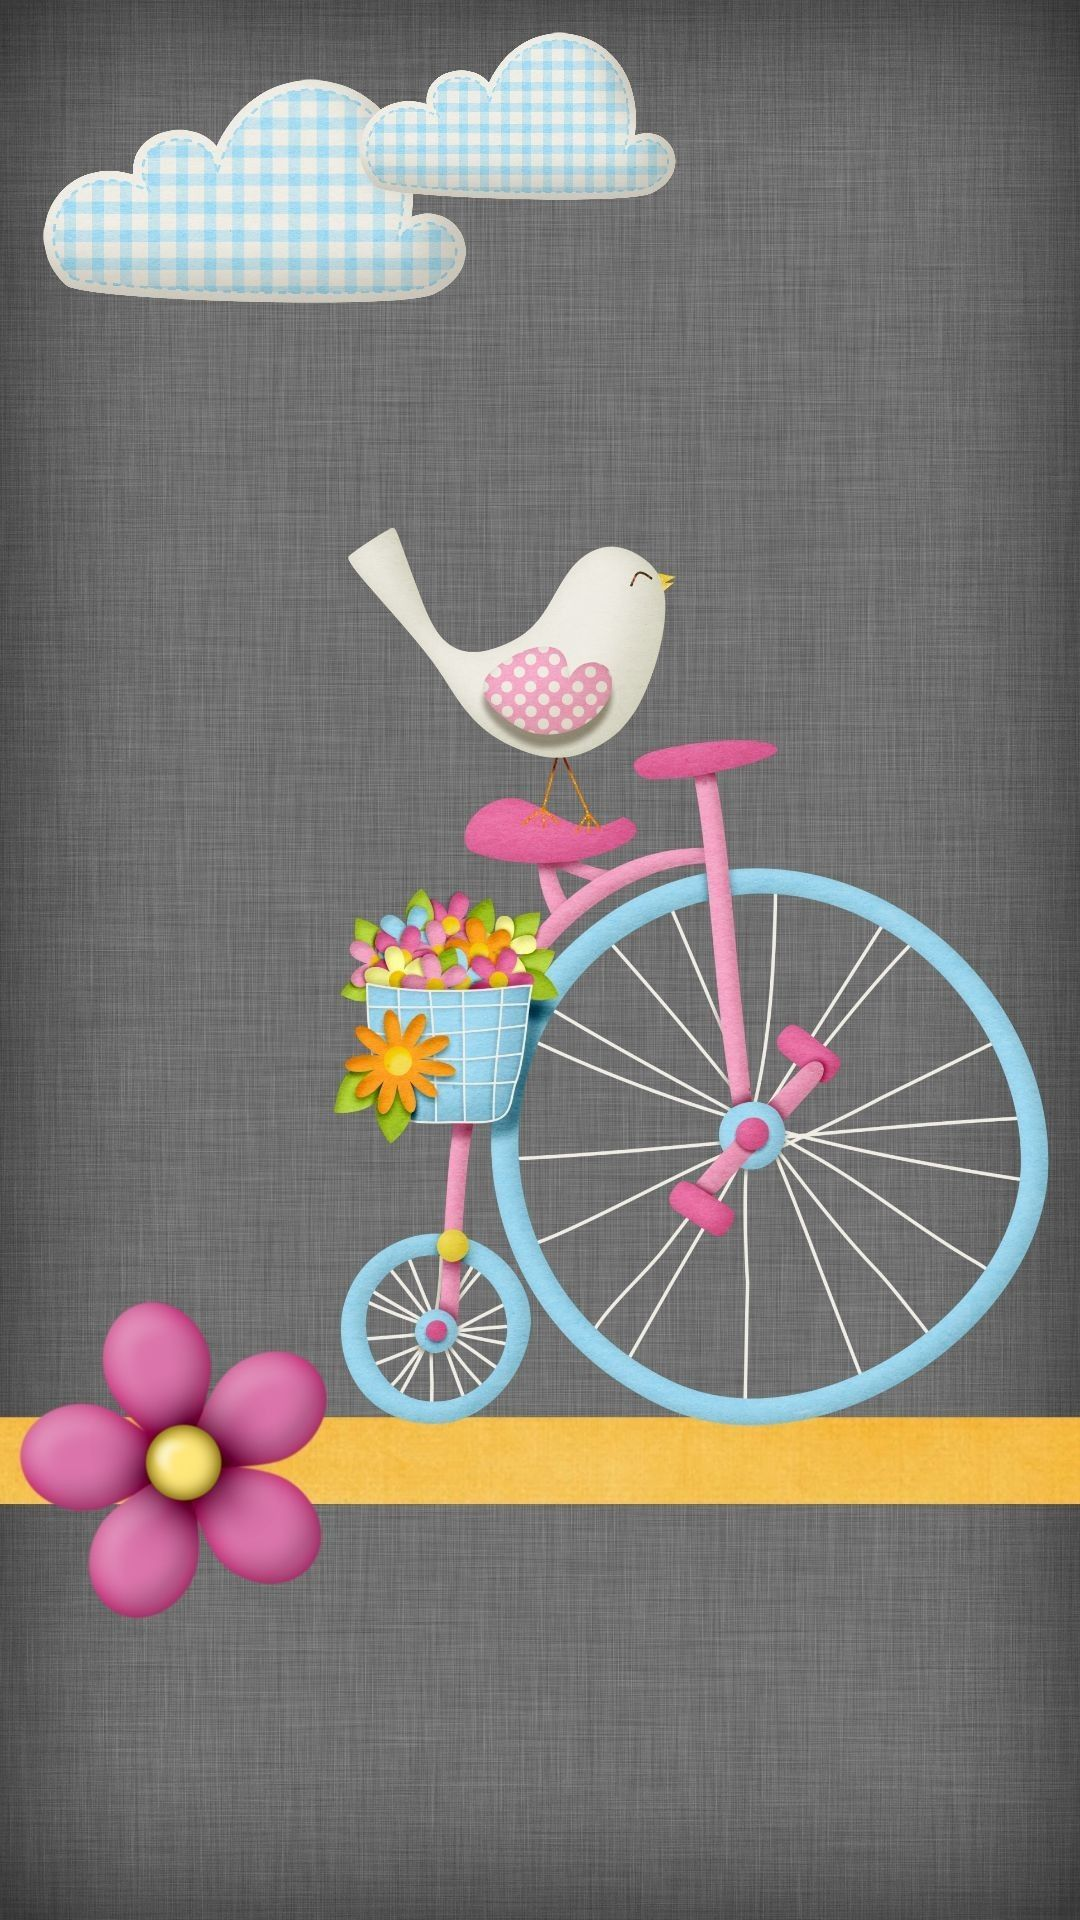 Images By Rose On ✿✿ฺ Iphone | Cute Wallpapers, Flower Wallpaper, Cellphone Wallpaper 414